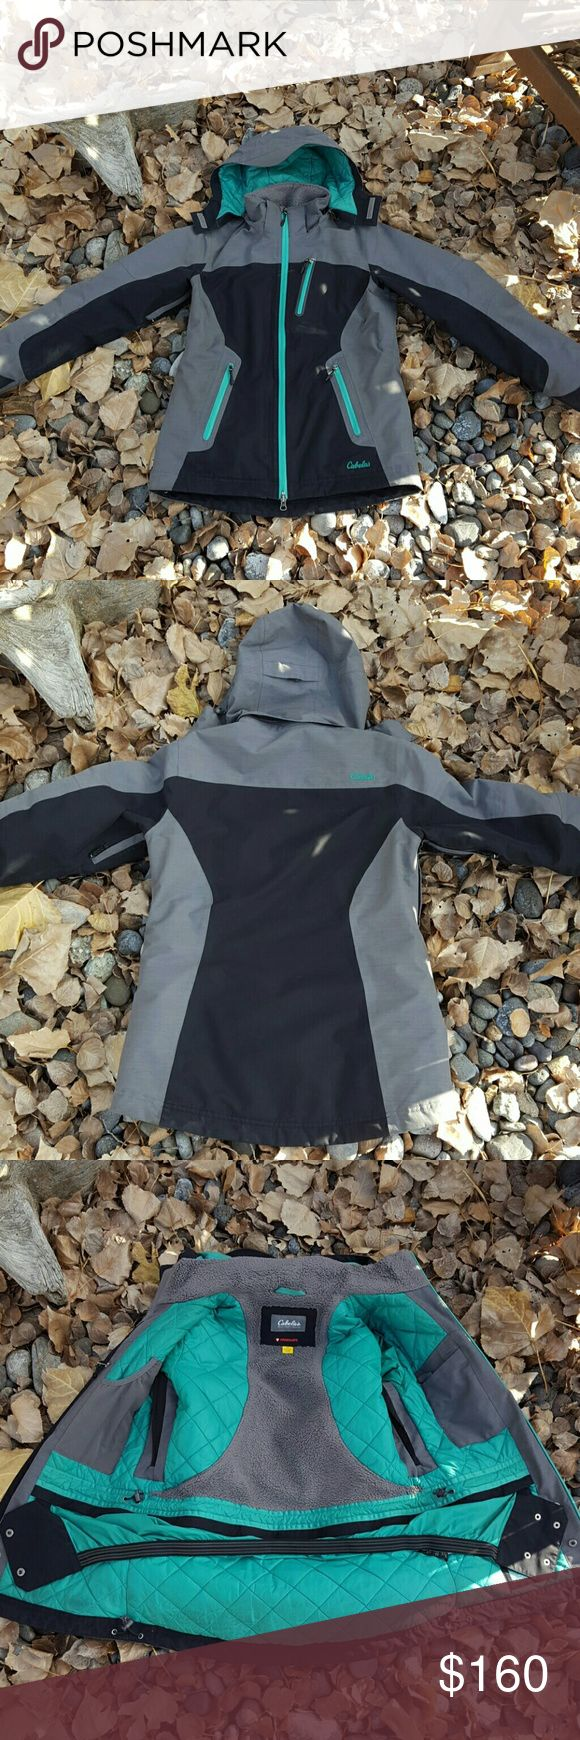 Cabelas Women's Winter Jacket w/ Goretex Cabelas  Women's Winter Jacket  Goretex  Primaloft  Size S/P Black, Gray, & Turquoise Color Detachable Hood, Hood also has adjustable cincher and velcro front to block wind if needed 2 Front Bottom Pockets, 1 Upper Chest Pocket, 1 Pocket on Arm for ski pass or ID  Zipper Arm Vents 3 inside Pockets  (1 mesh pocket, 1 ipod/cell phone pocket, 1 zipper pocket) Soft Inside Lining Powder Skirt Cinchable Waist and Bottom to keep snow & cold out Worn spots…